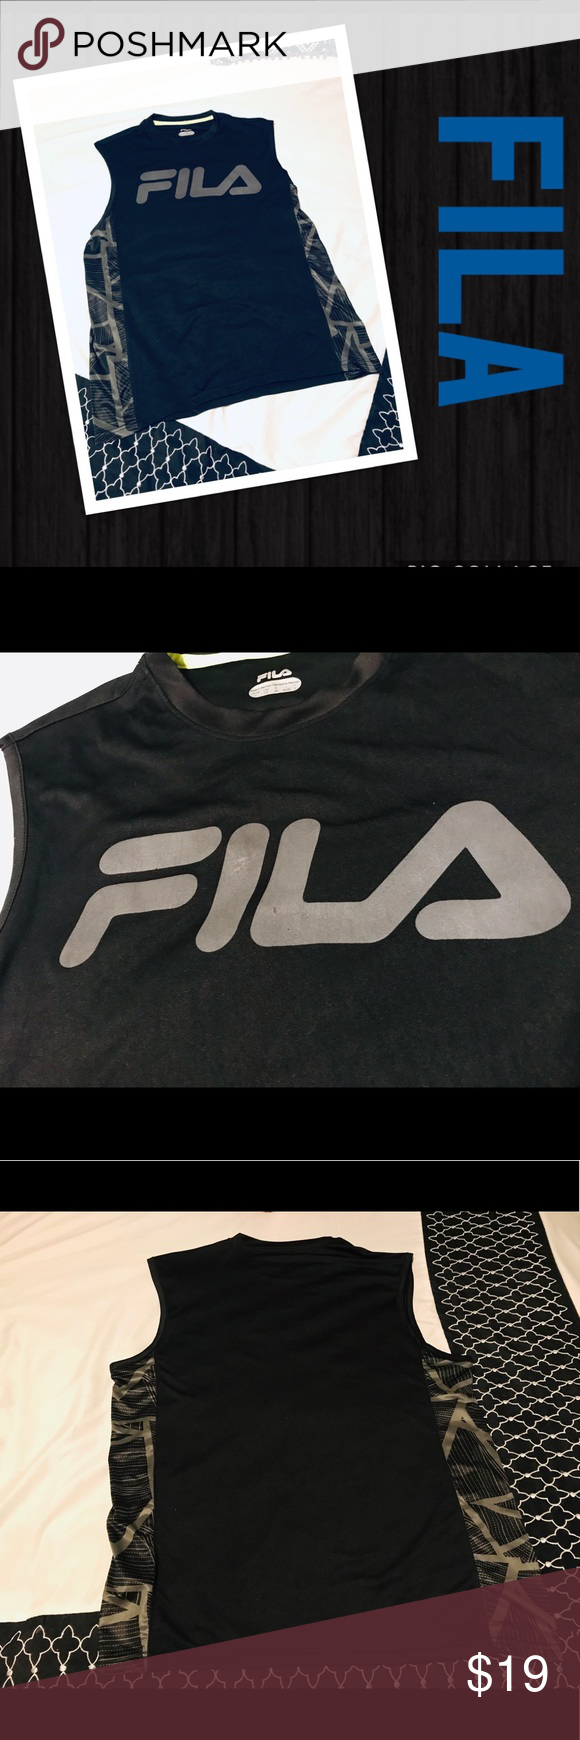 0342ad26eef6 🎾FILA Sports Sleeveless Athletic Running Shirt 🎾 FILA Sports Men's  Grey/Black Sleeveless Athletic Running Shirt, Size Large. Pre-owned.